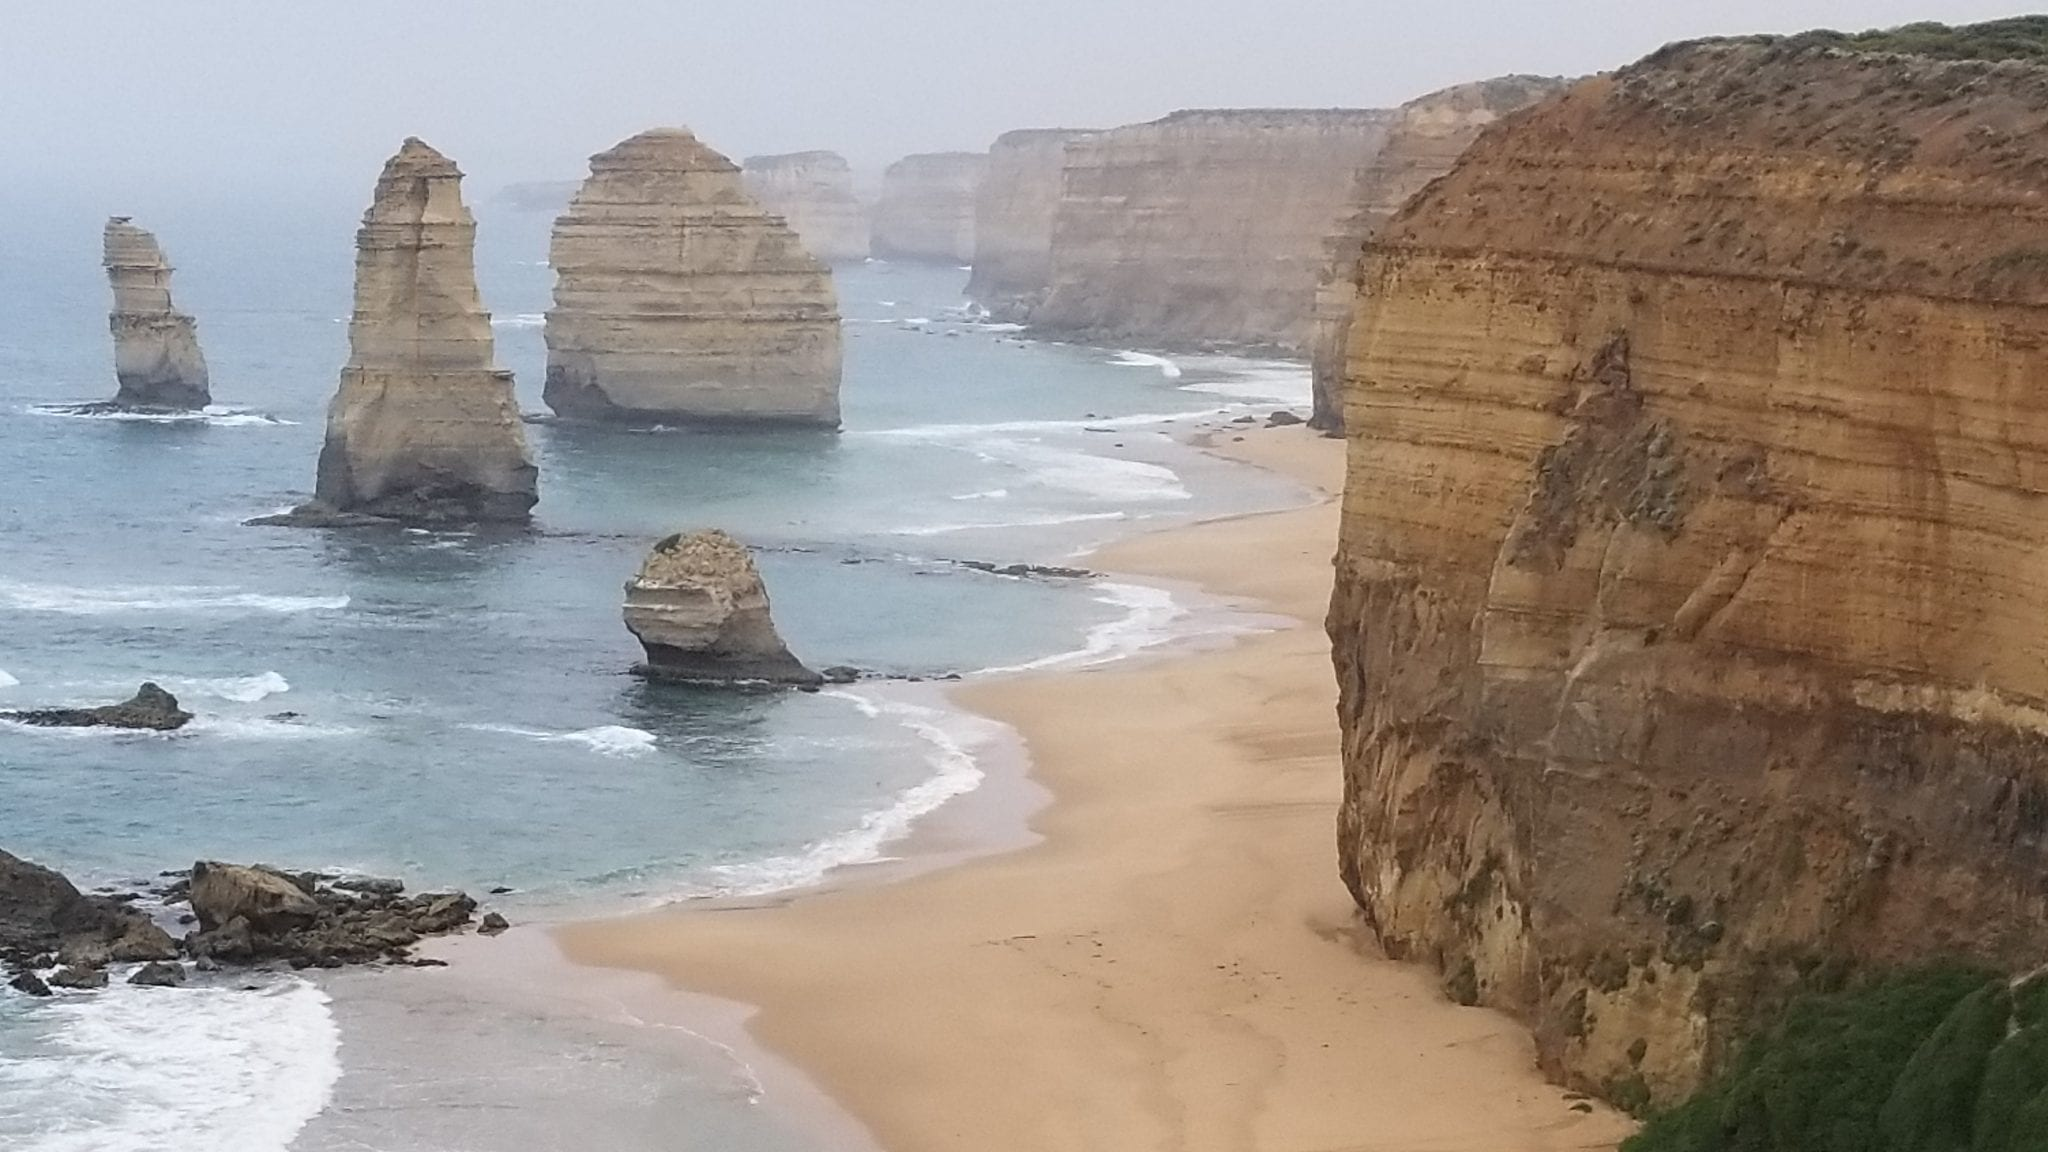 Apostles-On Shipwreck Coast-Great Ocean Road